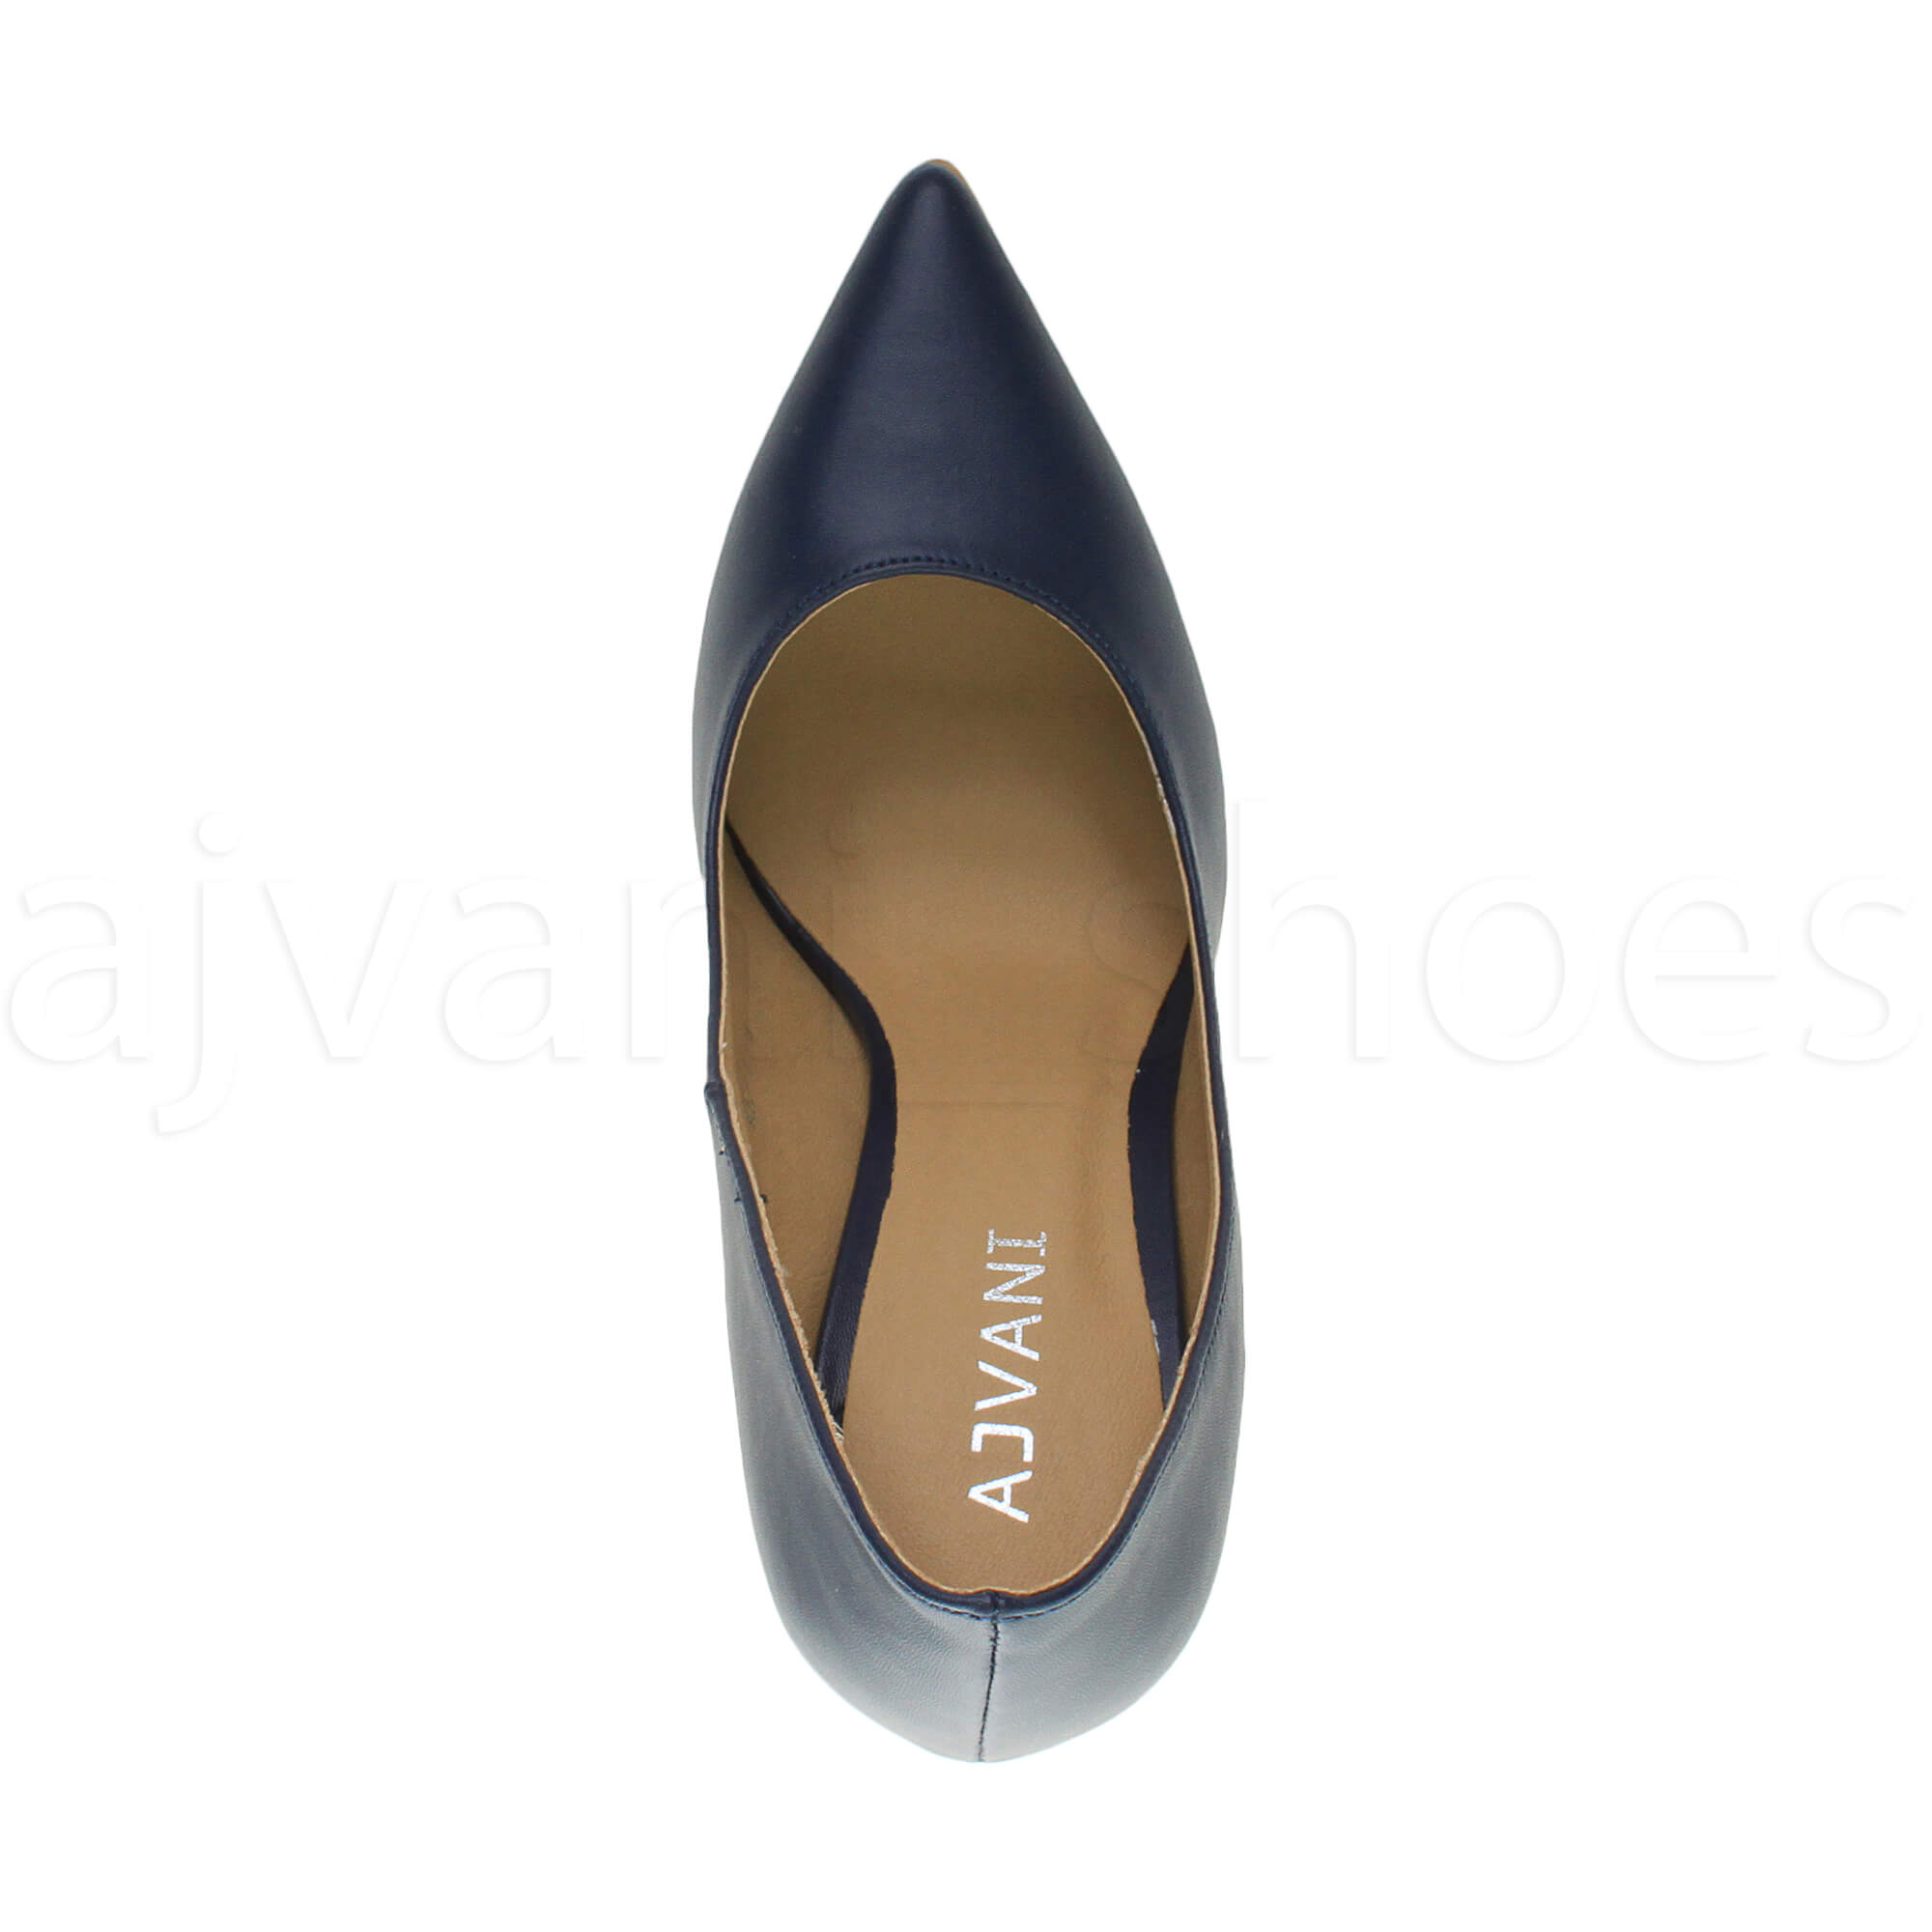 WOMENS-LADIES-HIGH-HEEL-POINTED-CONTRAST-COURT-SMART-PARTY-WORK-SHOES-PUMPS-SIZE thumbnail 110